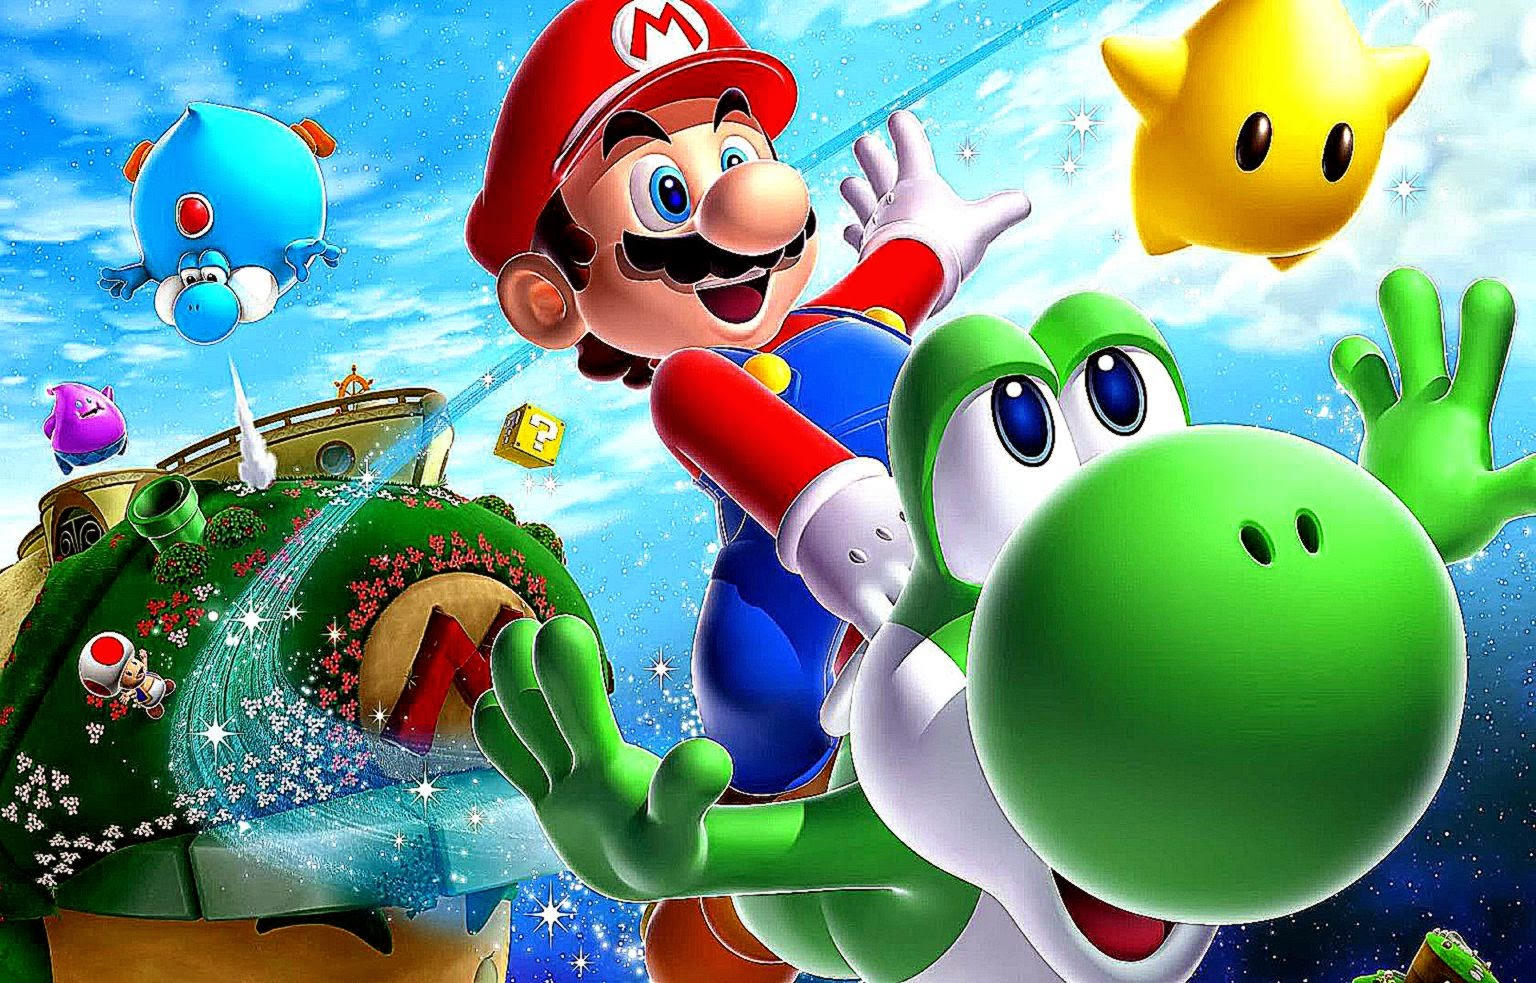 HD Wii Wallpapers Mario Kart Super Mario Galaxy 2 Toad